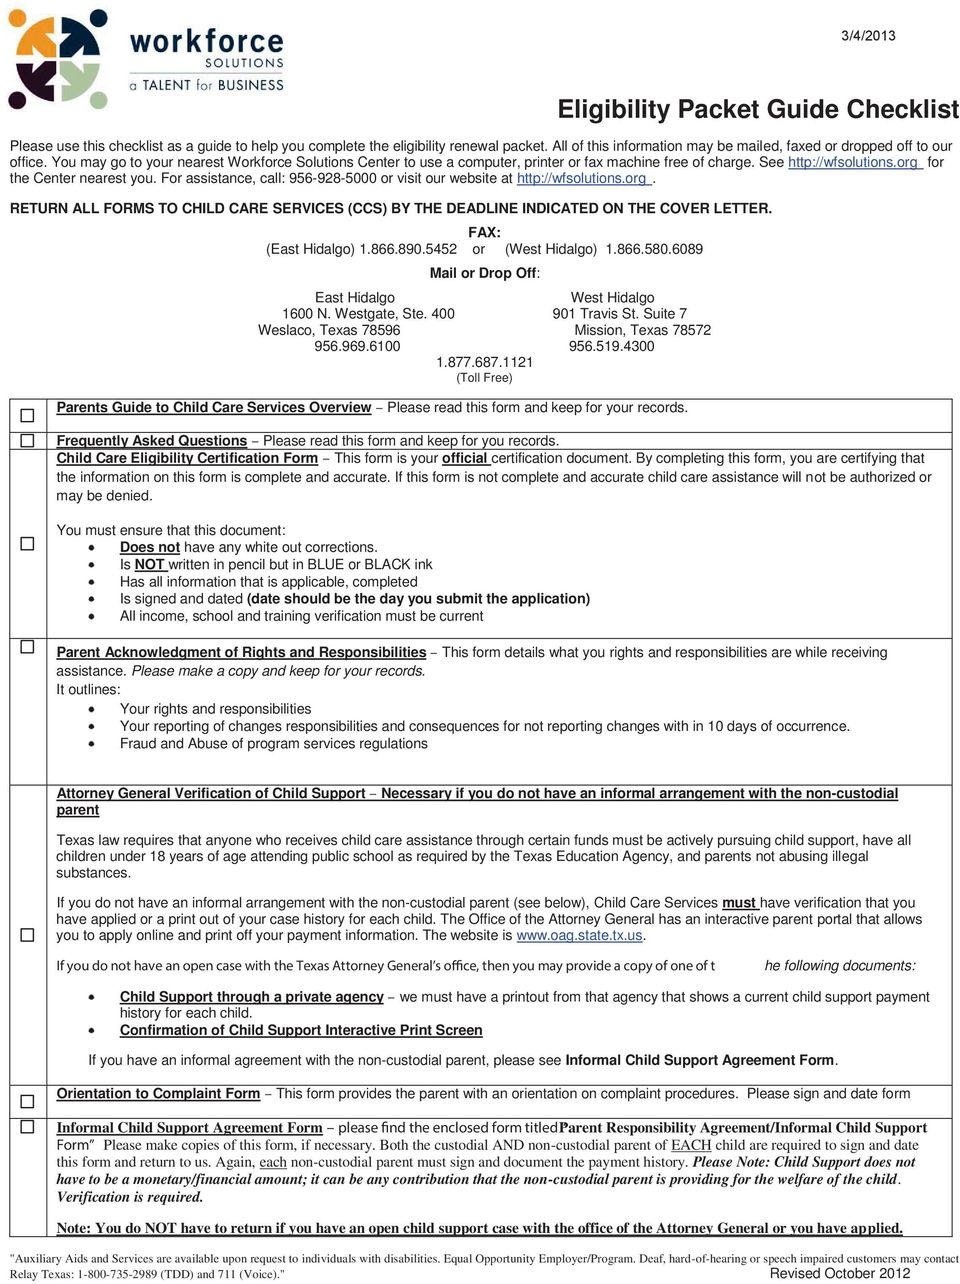 Workforce Solutions Child Care Services Eligibility Requirements